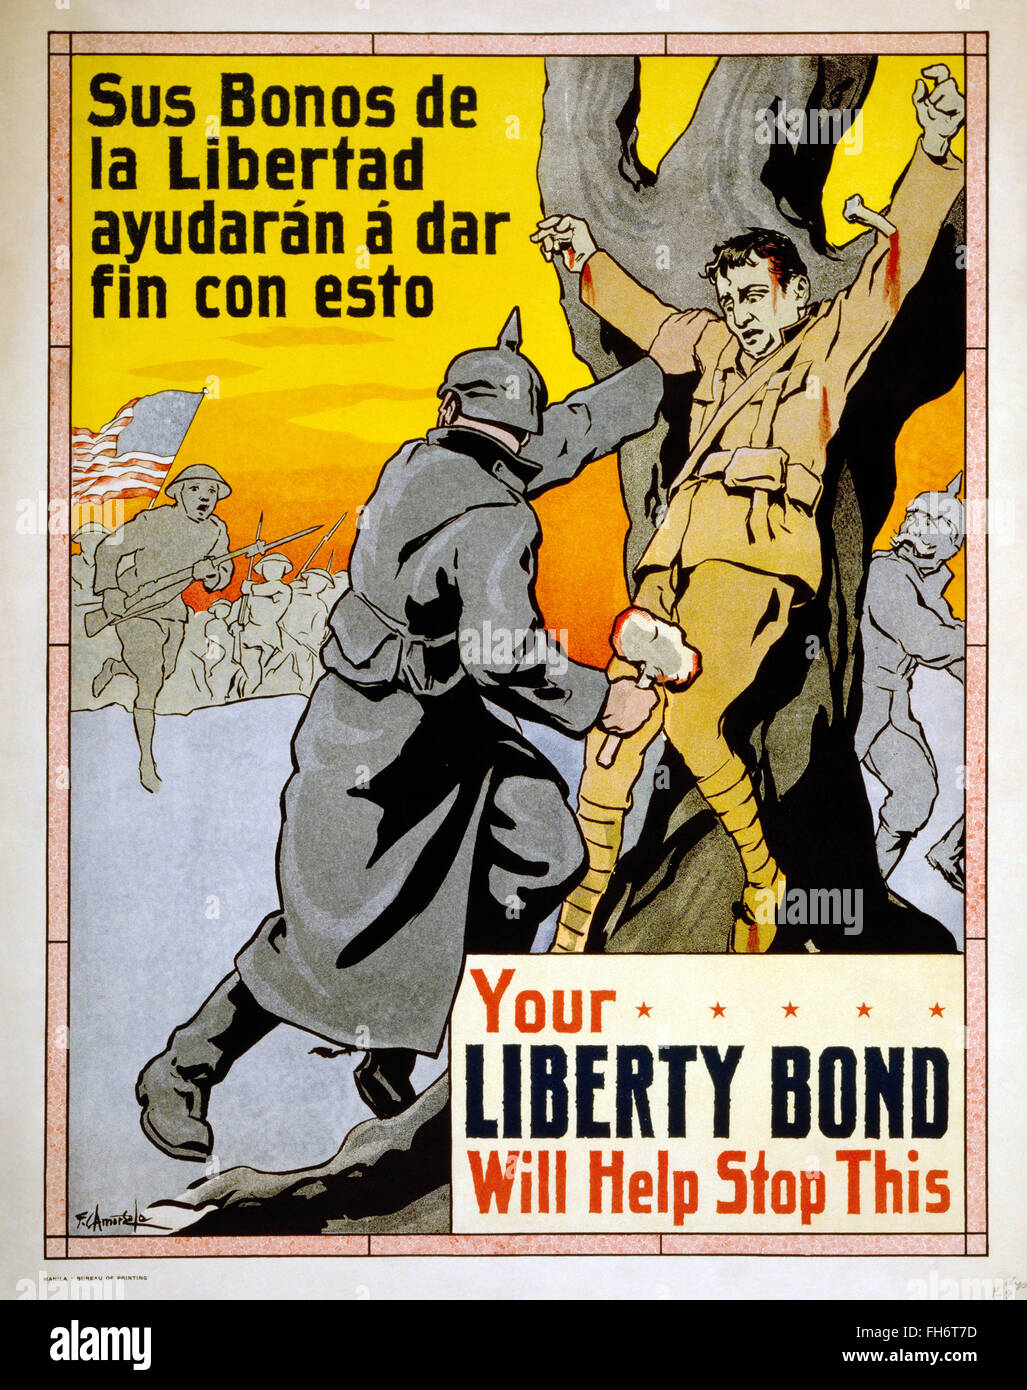 Your Liberty Bond will help stop this  - US Propaganda Poster - WWI - Stock Image